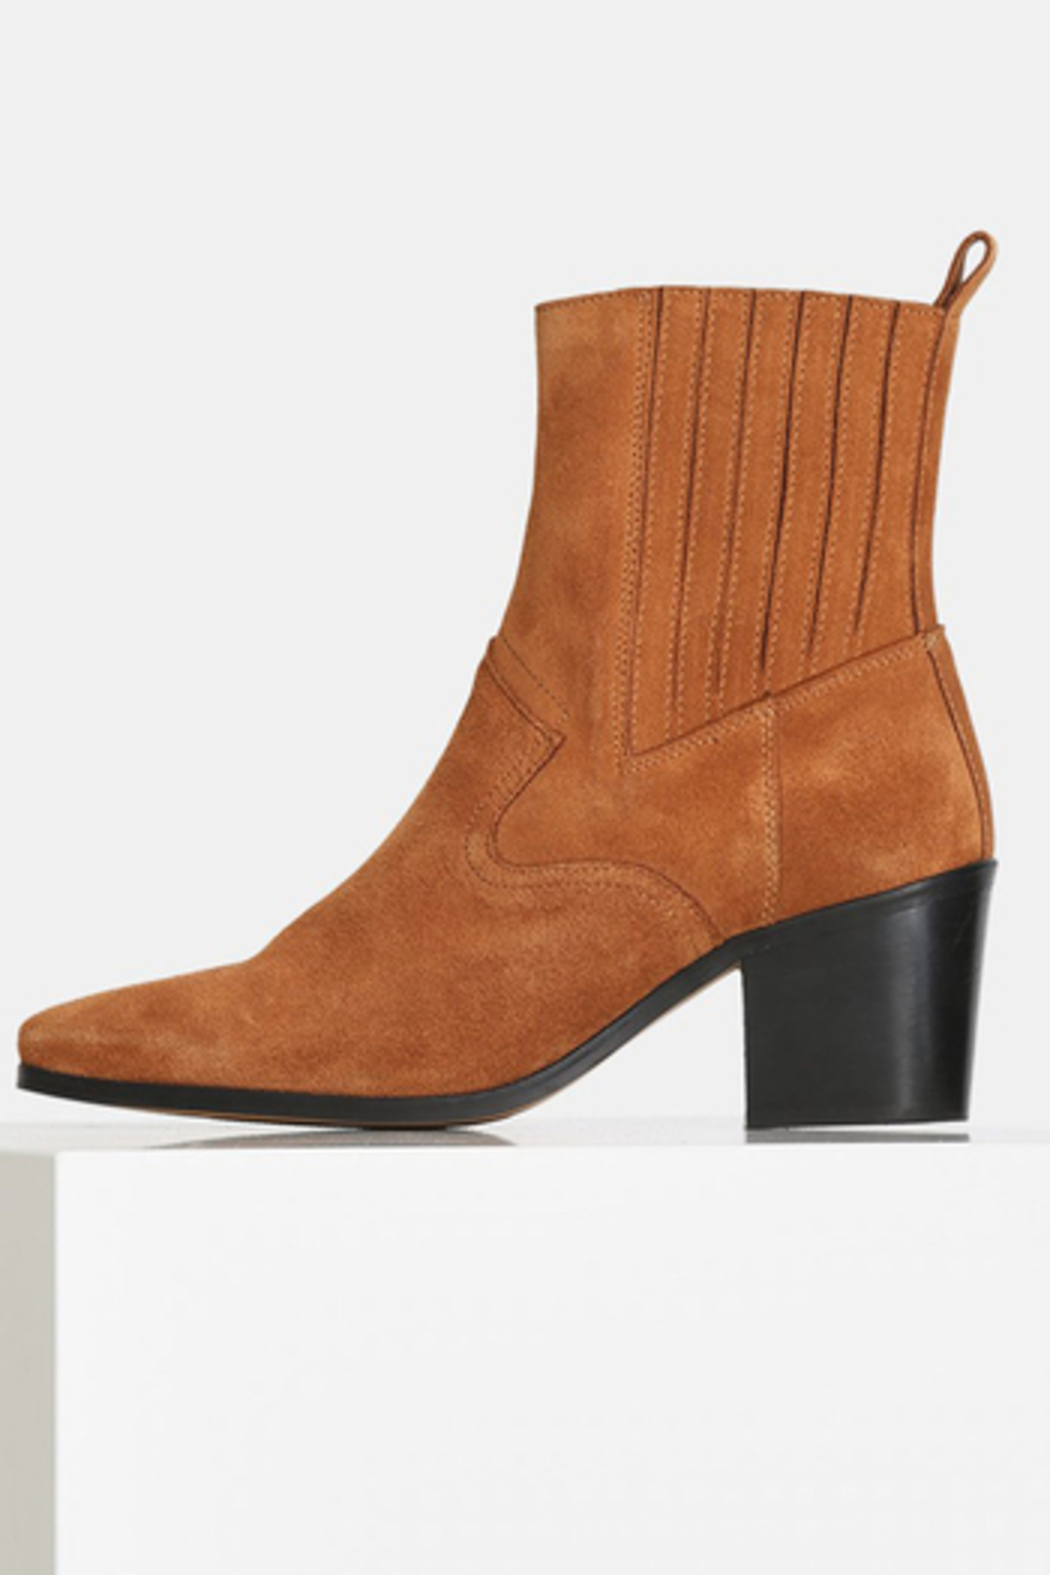 Shoe the Bear BLOCK HEEL SUEDE ANKLE BOOT - Main Image